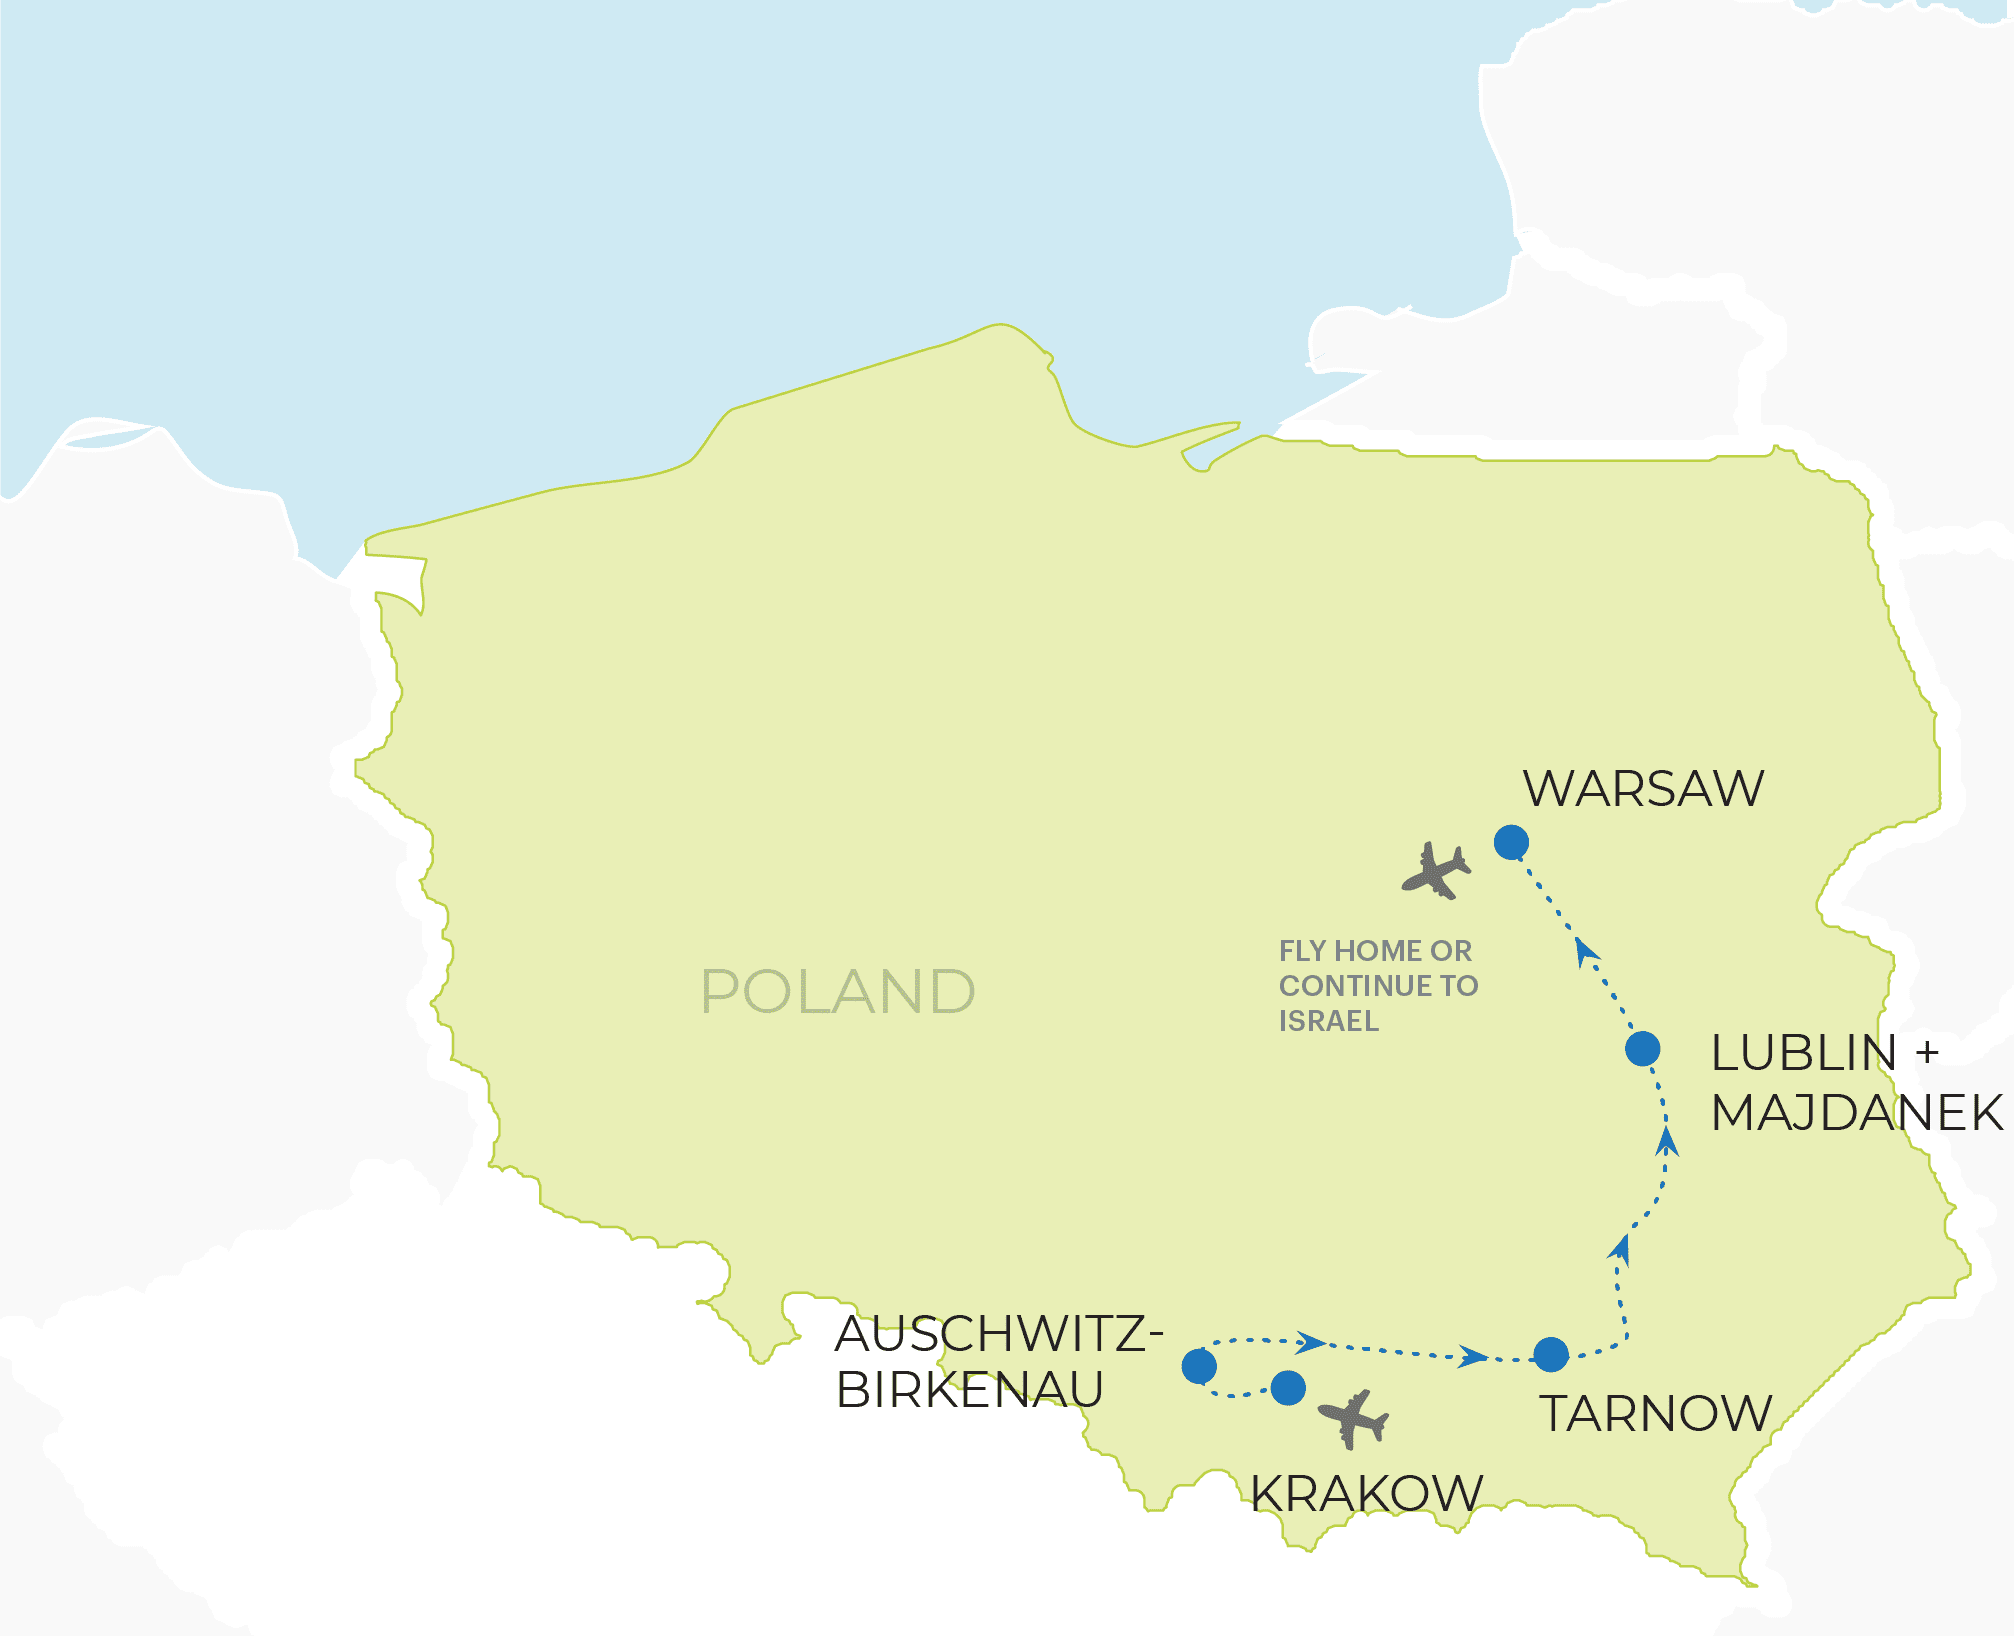 March of the living - Poland Trip Route